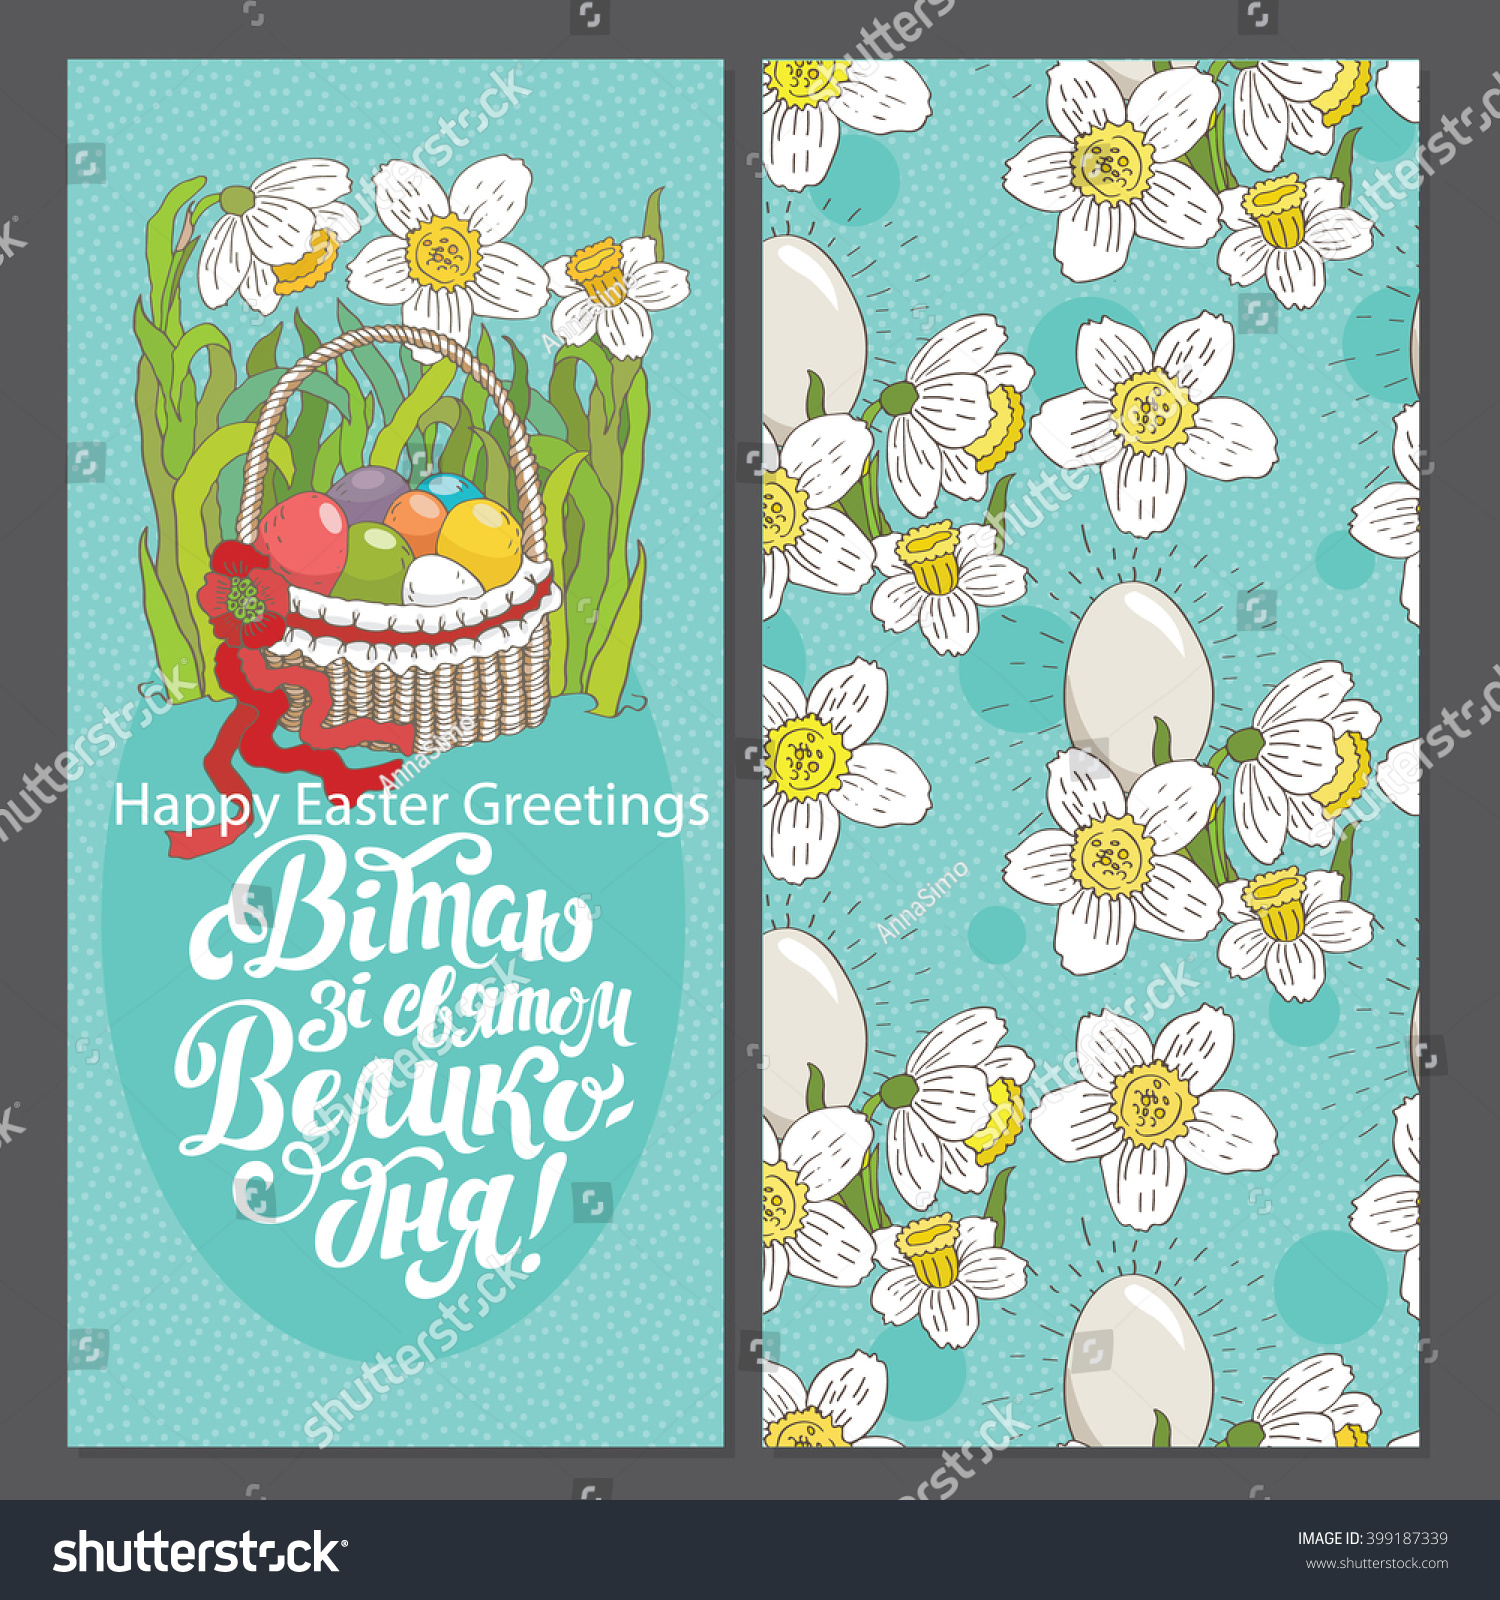 Happy Easter Greetings Set Two Posters Stock Vector Royalty Free